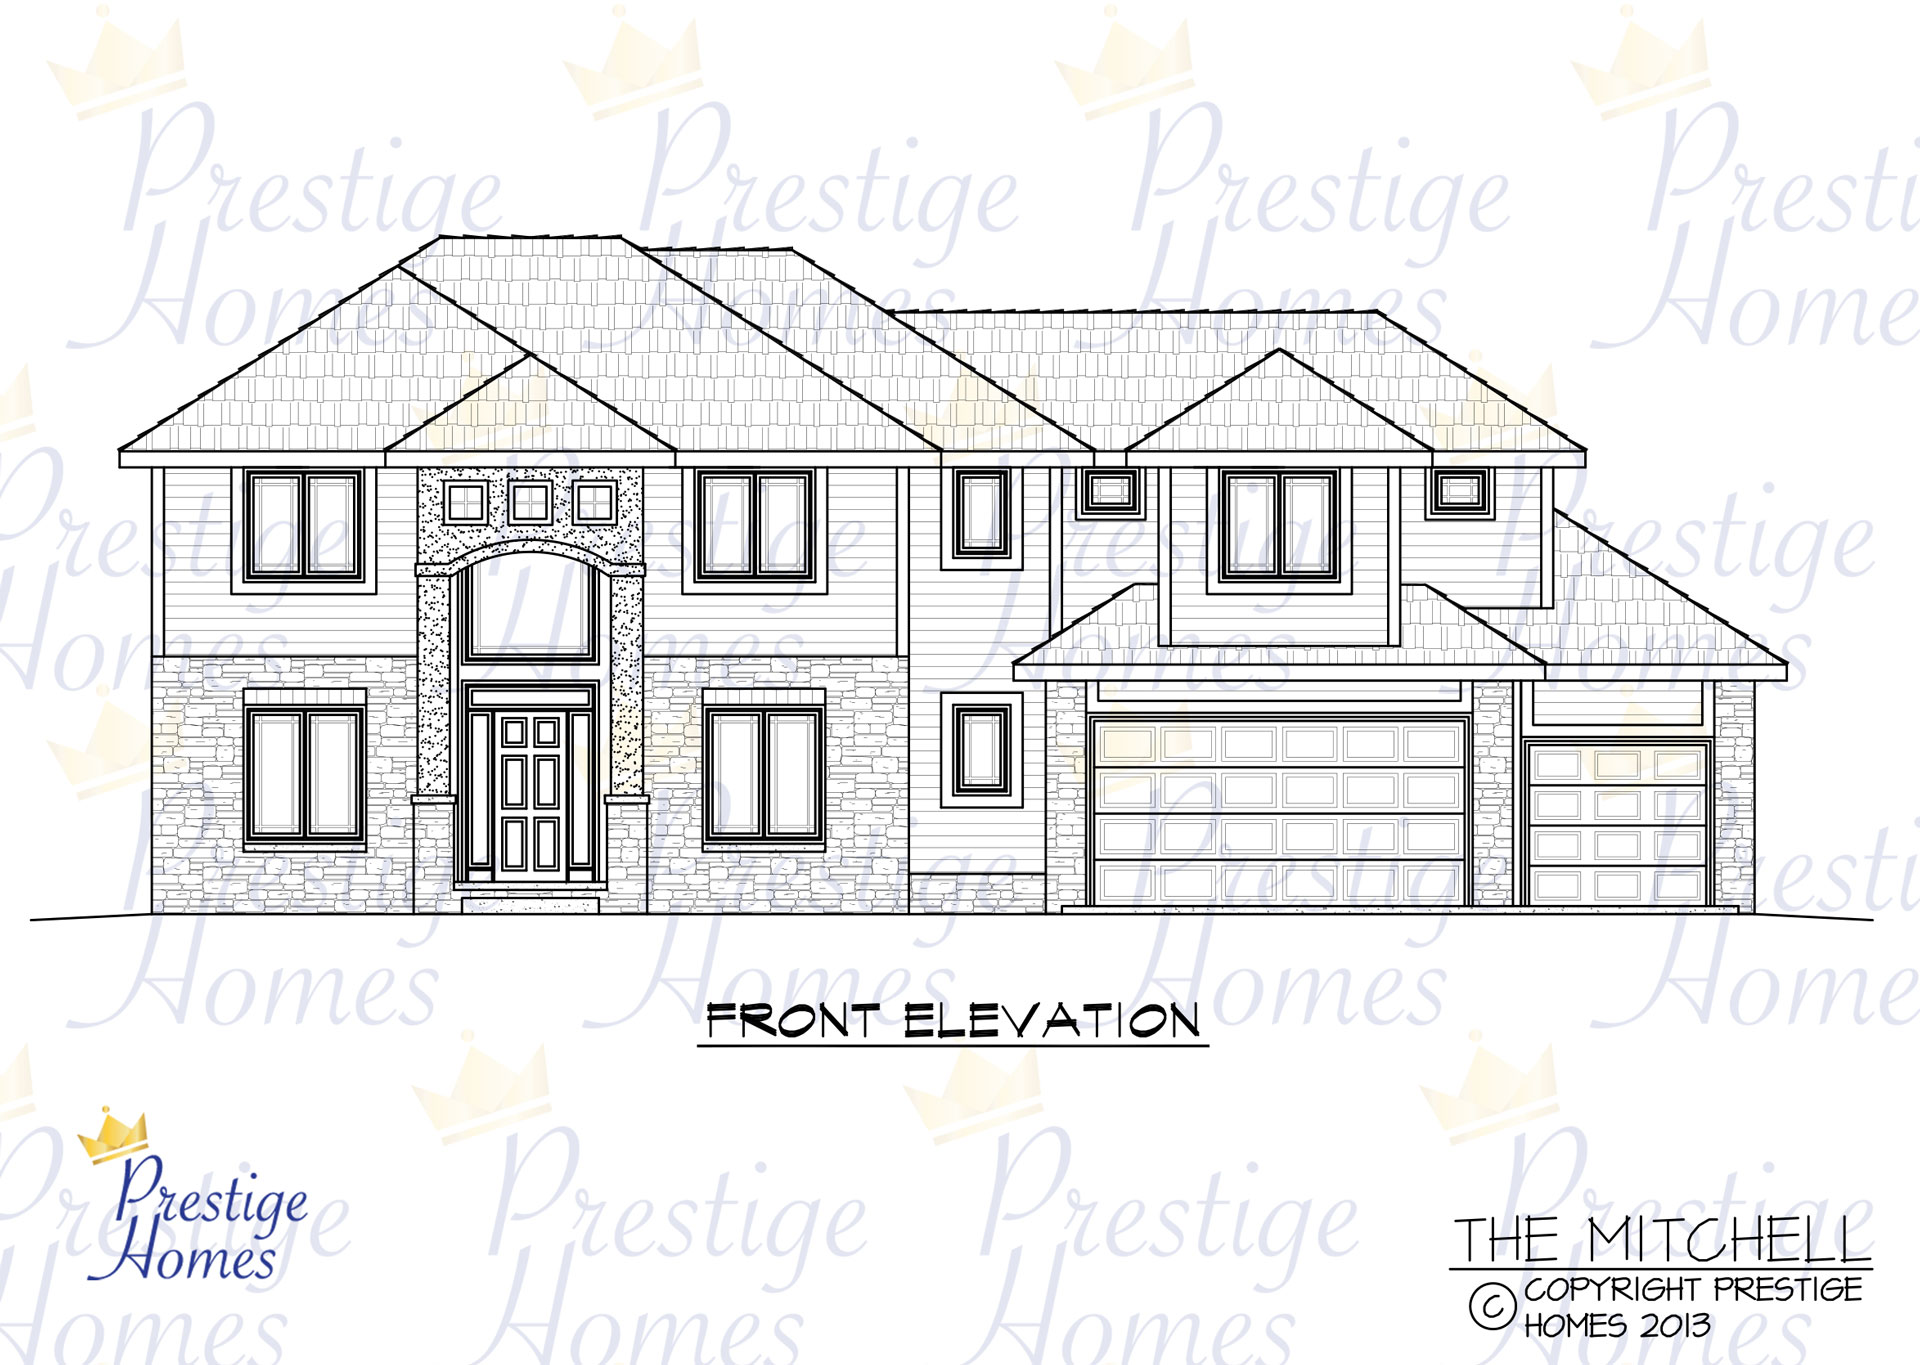 Prestige Homes - Floor Plan - Mitchell - Front